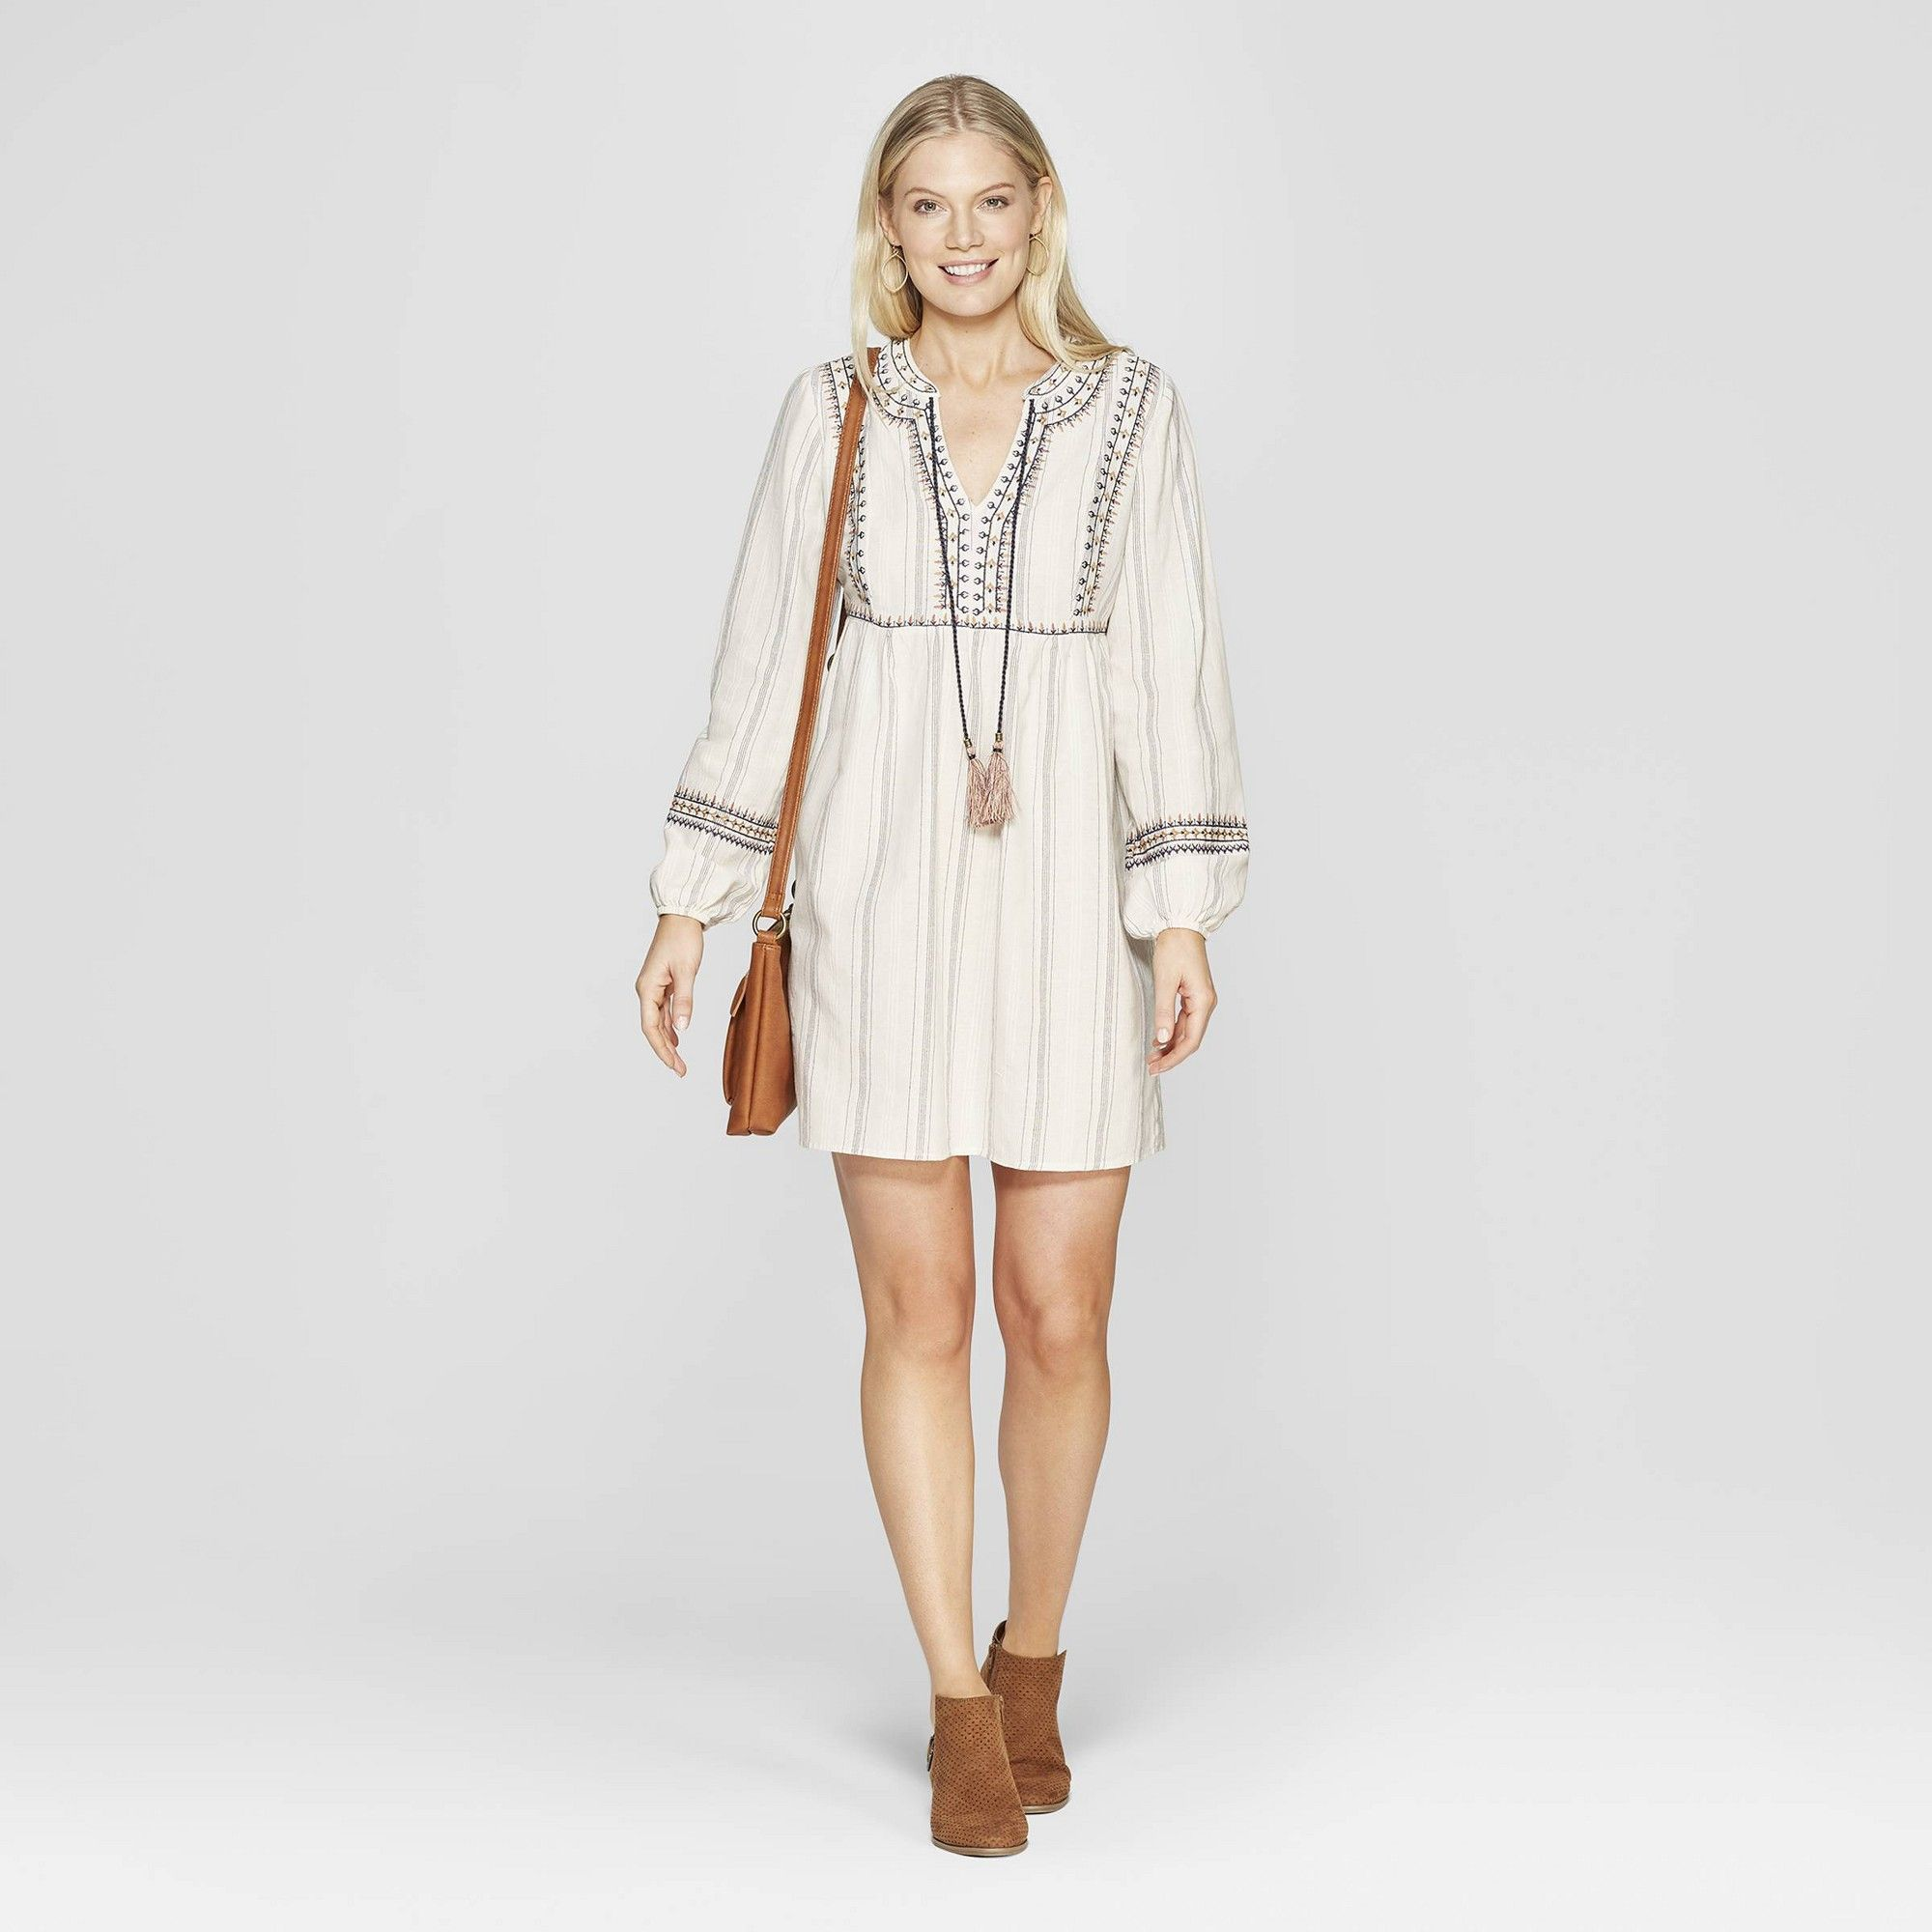 cfa184d04d Women s Striped Long Sleeve V-Neck Shift Midi Dress With Embroidery - Knox  Rose Ivory Xxl